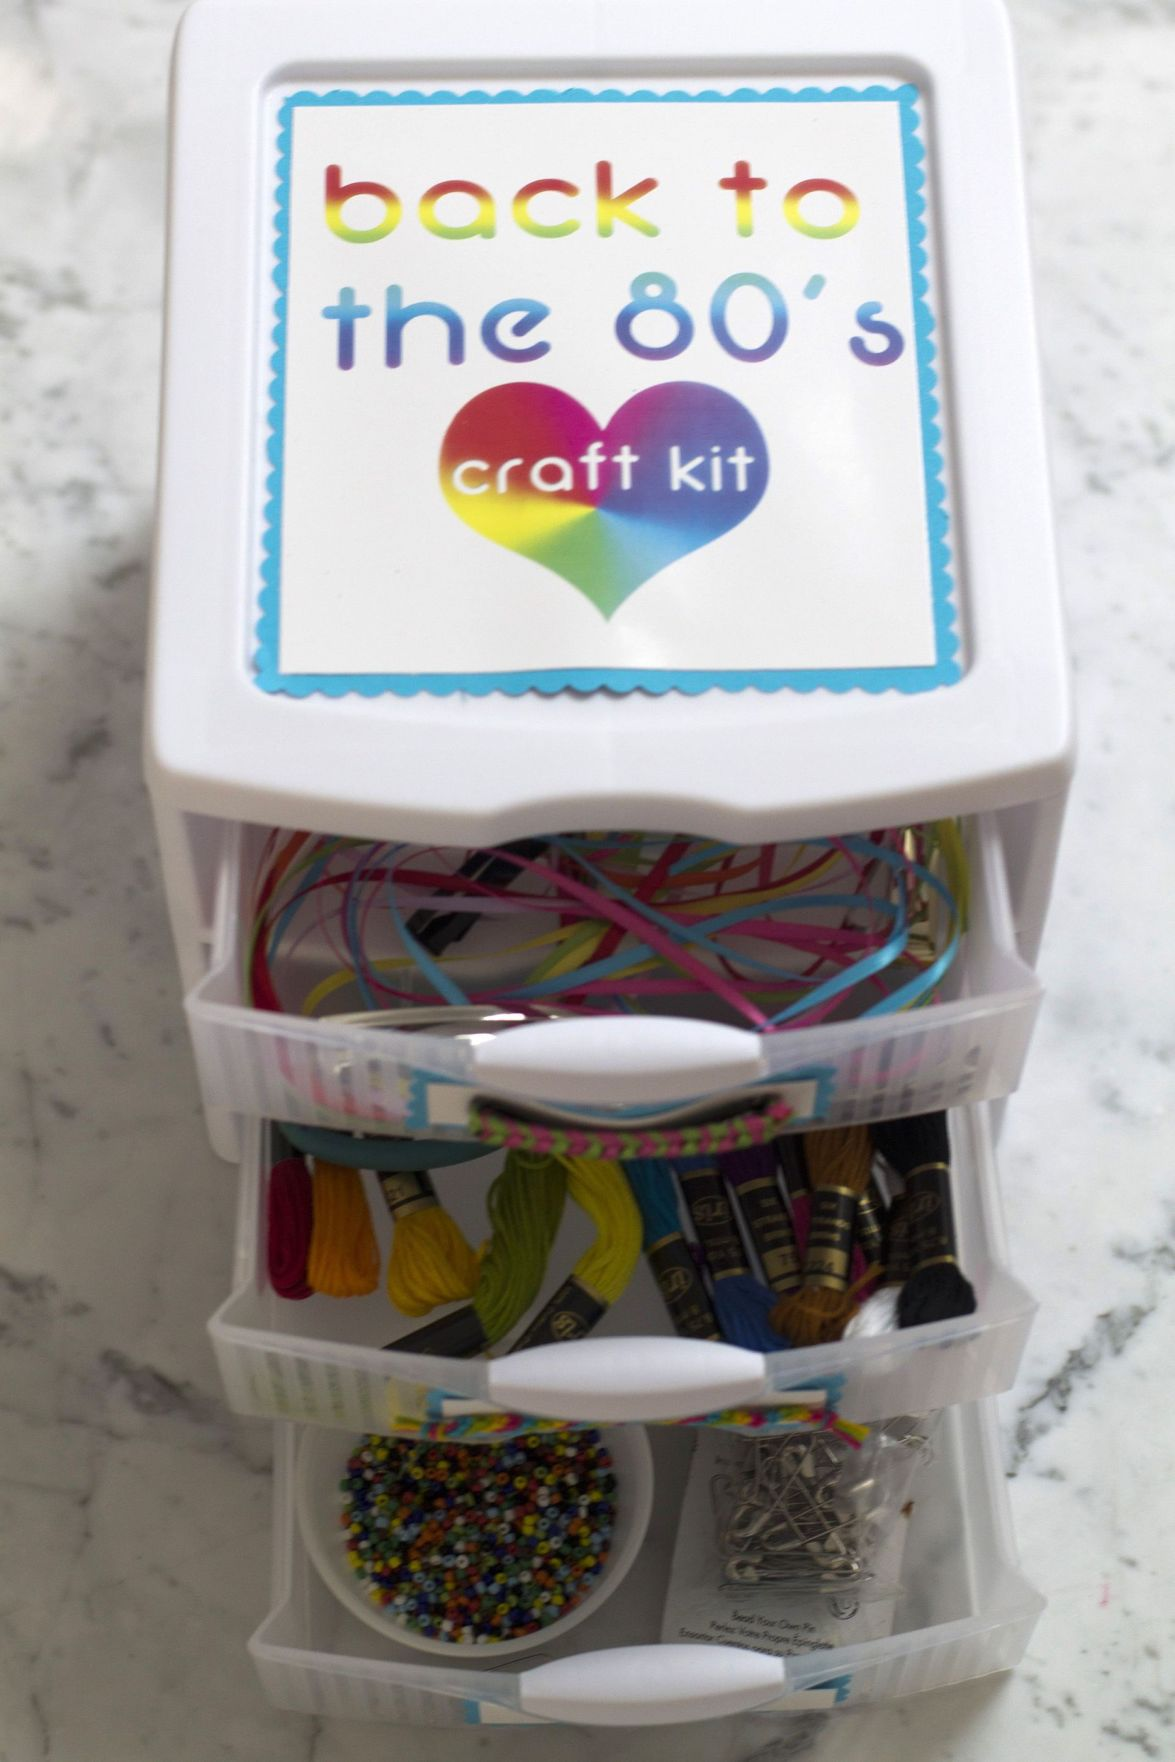 Supplies of pins, bracelets, barrettes fill 1980s-inspired kit